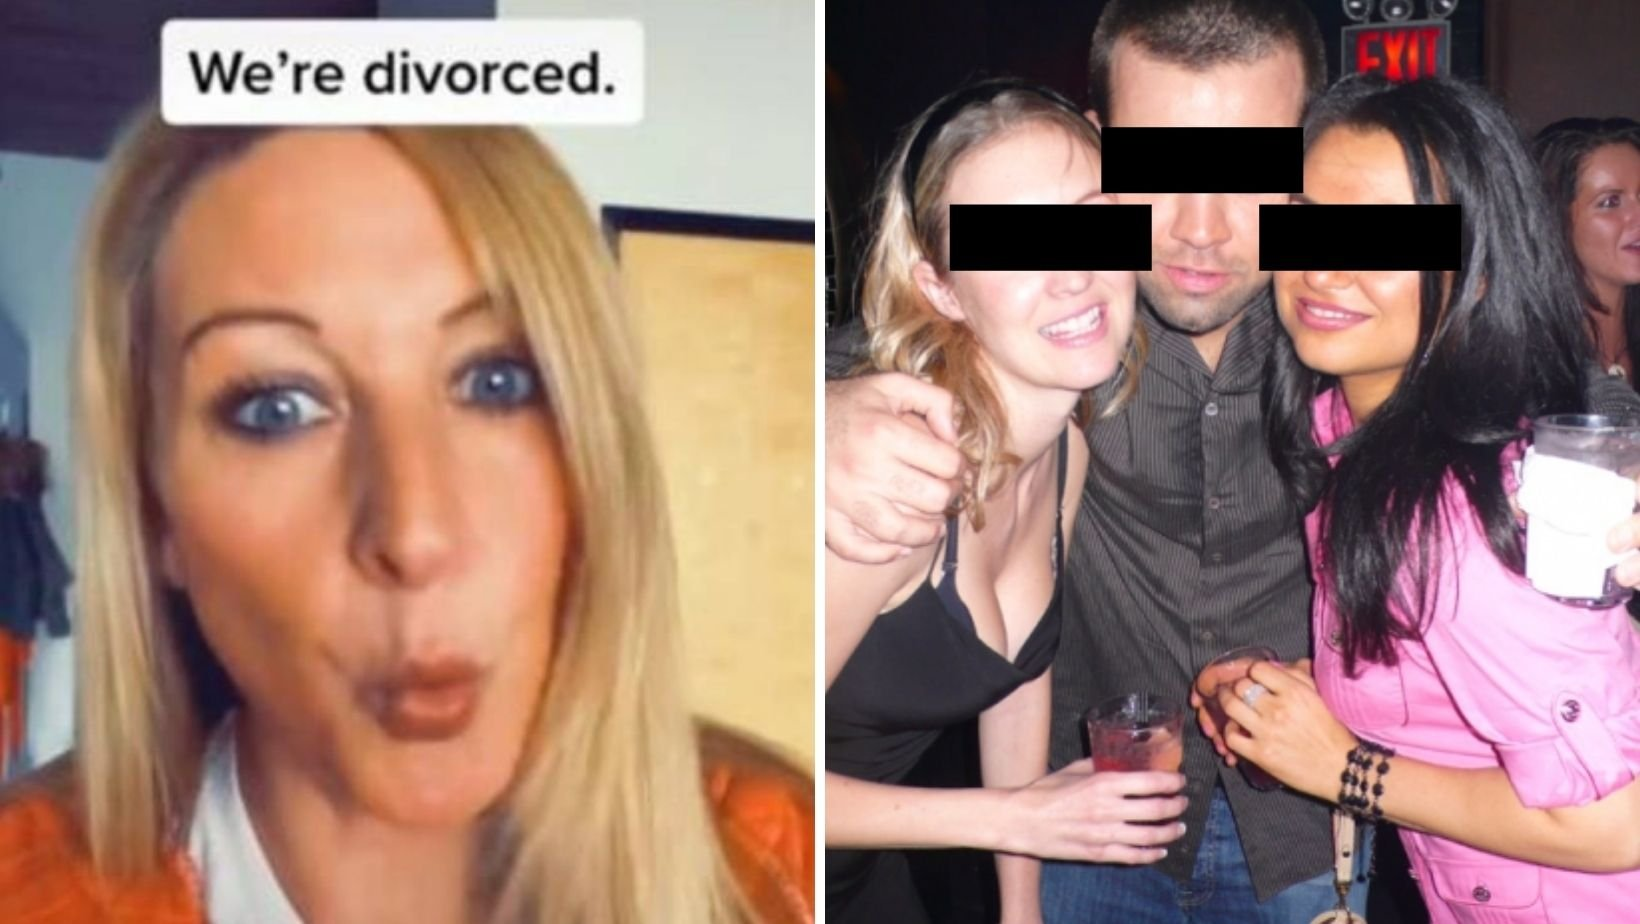 small joys thumbnail 2.jpg?resize=1200,630 - Woman Divorces Husband After Noticing A Tiny Detail In His Facebook Photo